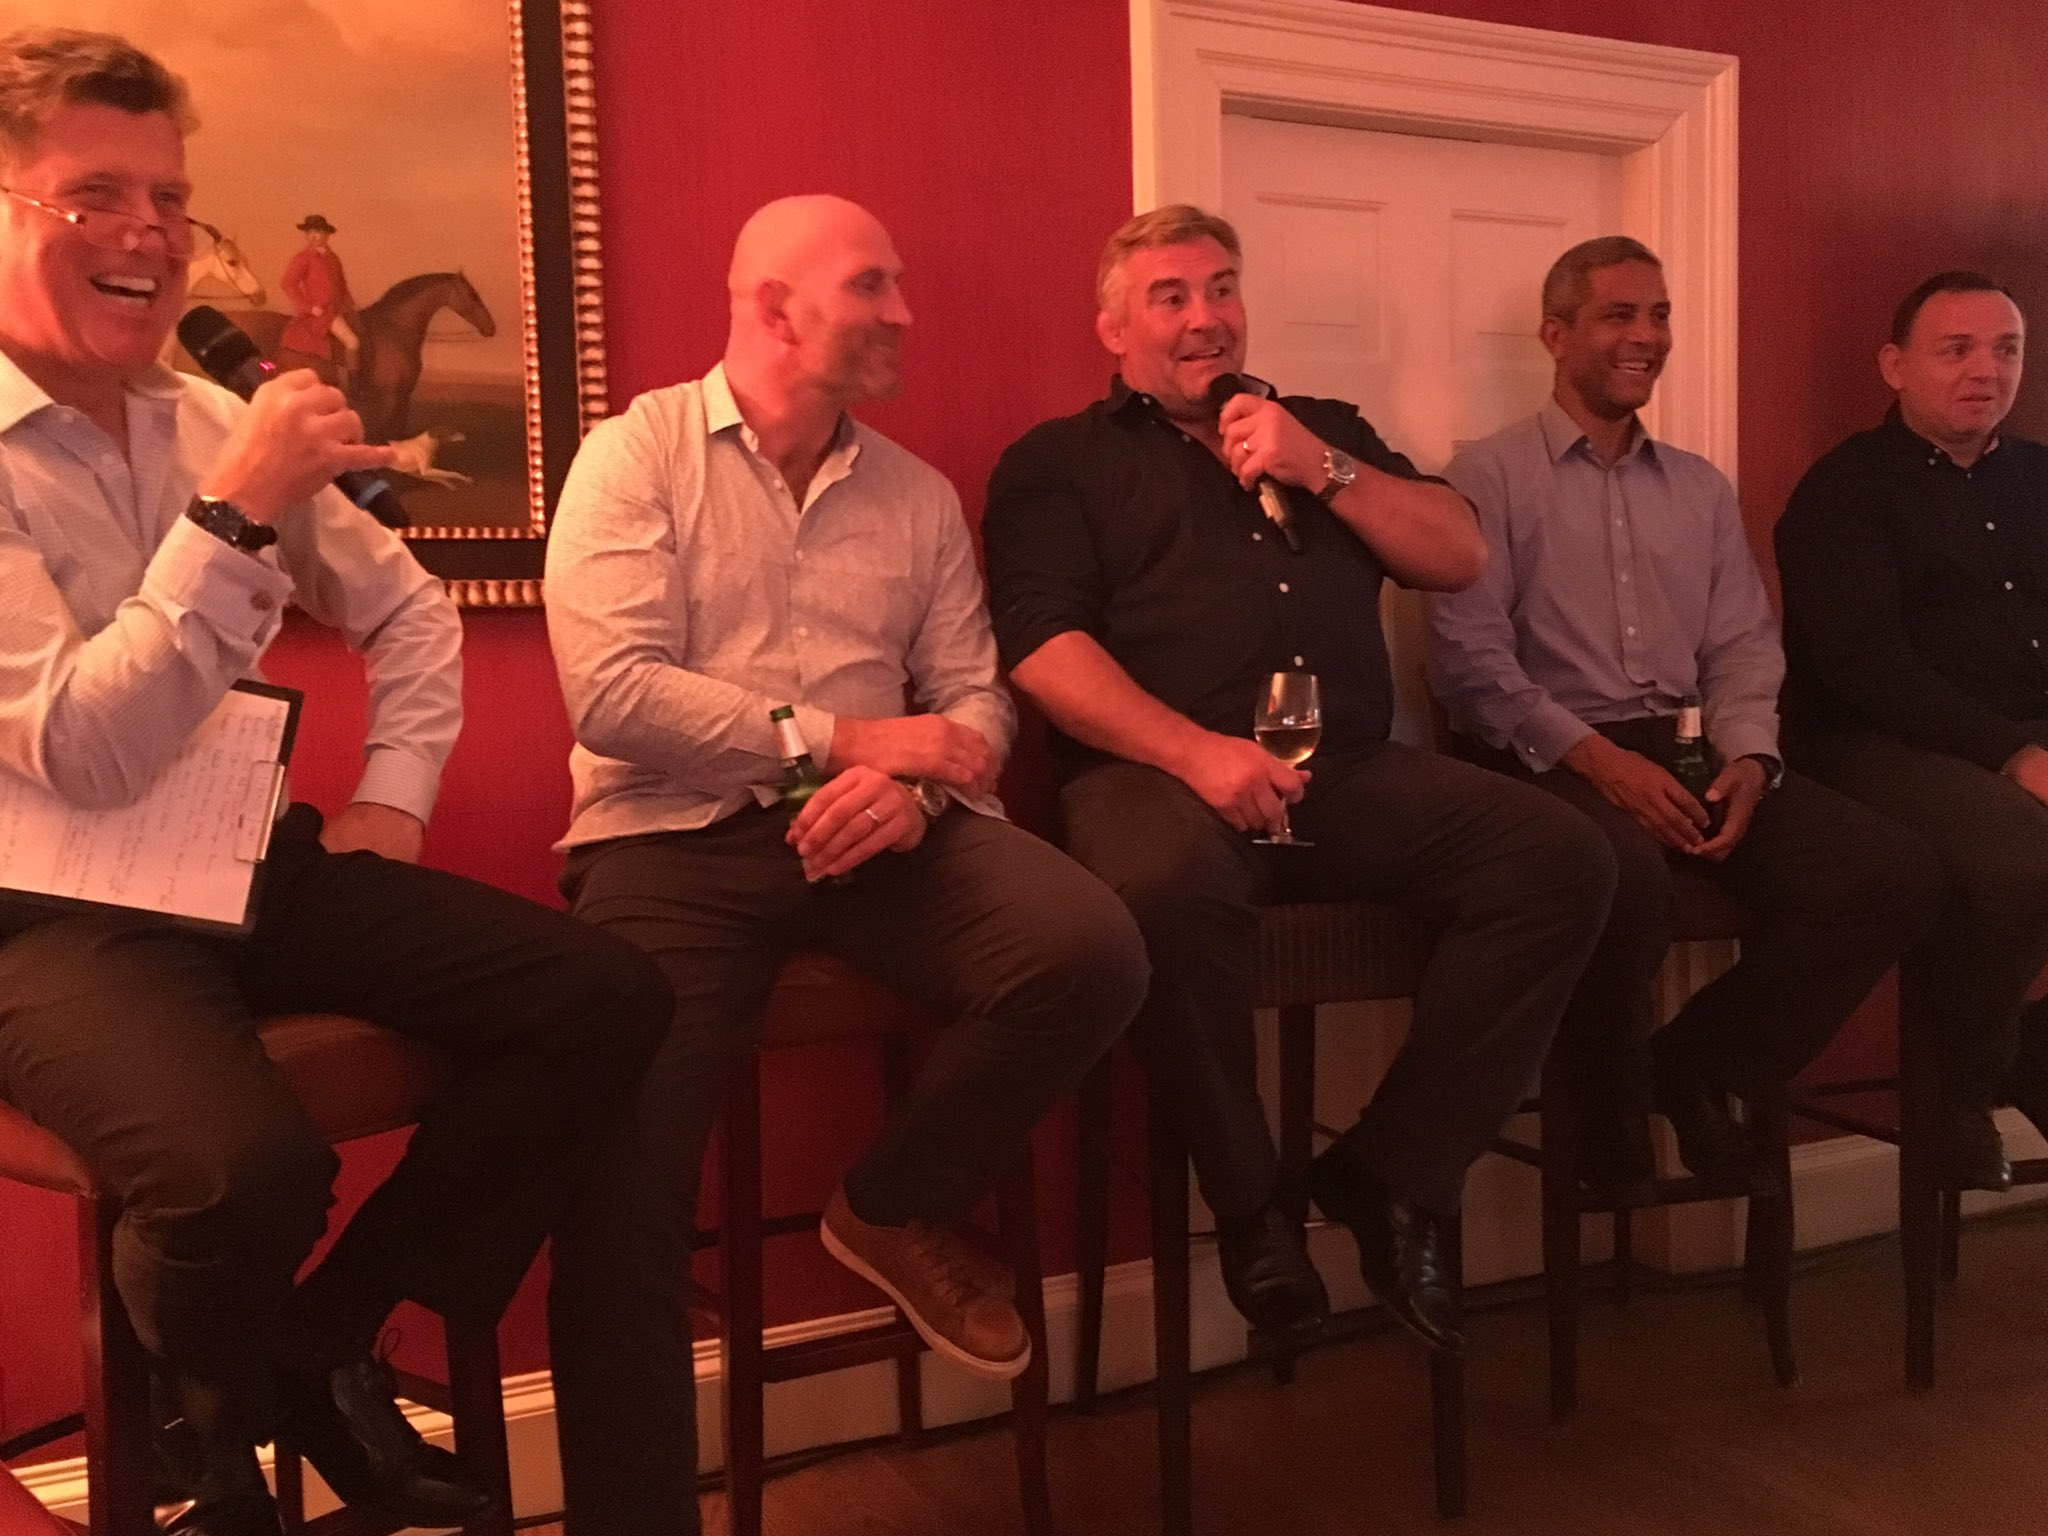 An incredible line up of rugby legends entertaining our golfers@@Archerfieldhse tonight, all in aid of #RugbyWorks https://t.co/krww16AXRg